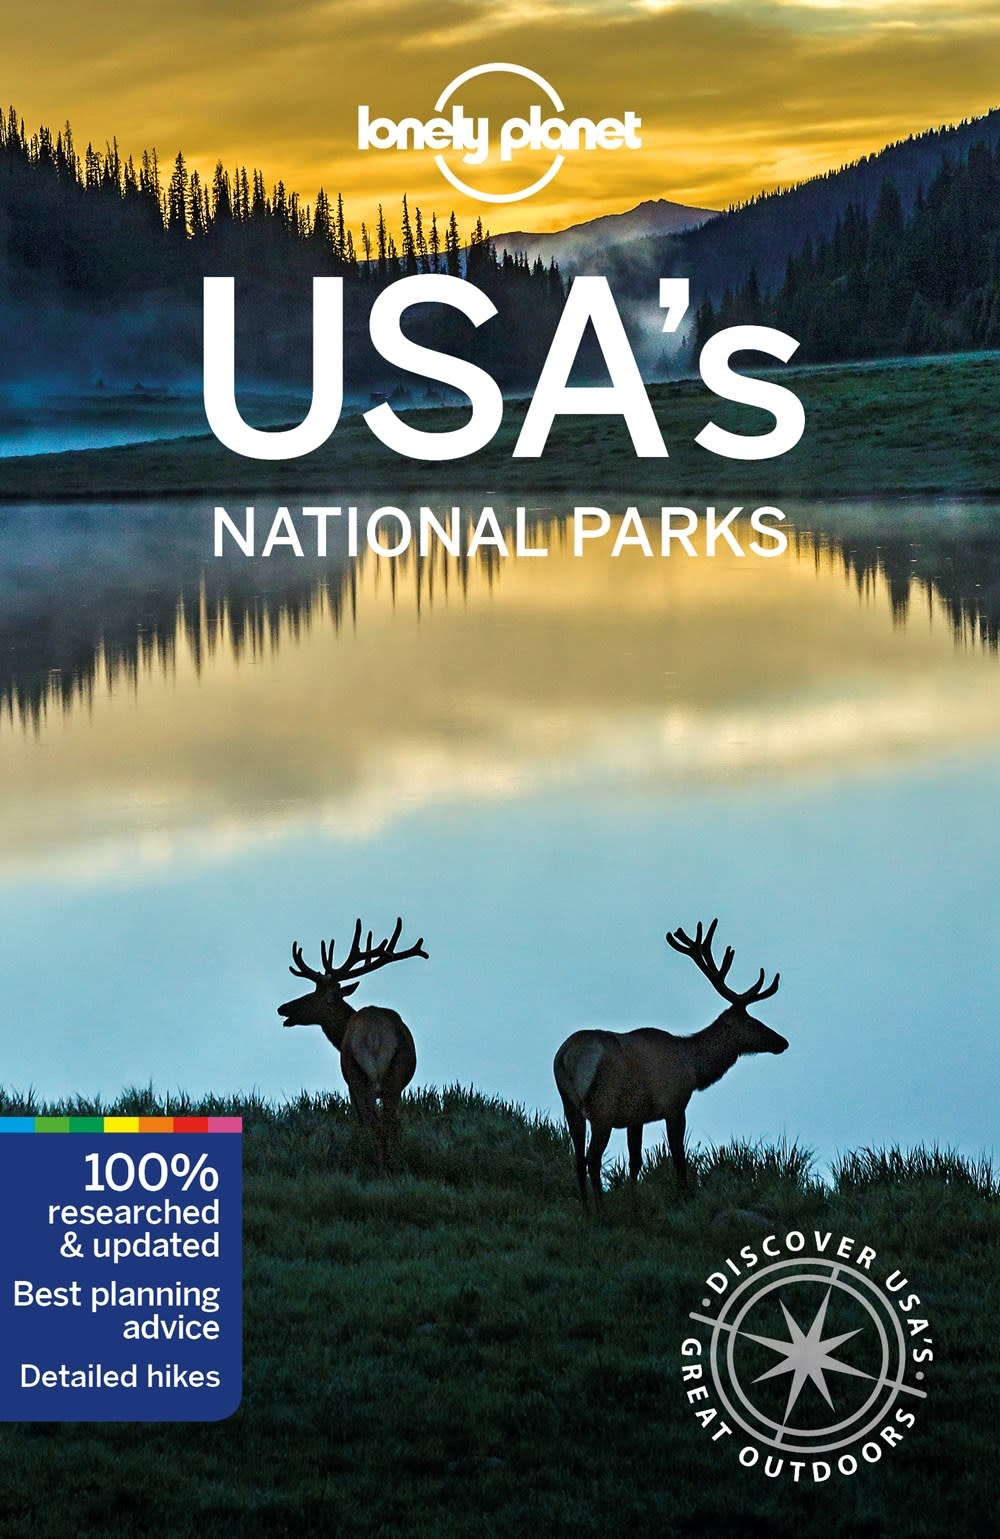 Lonely Planet Lonely Planet: USA's National Parks